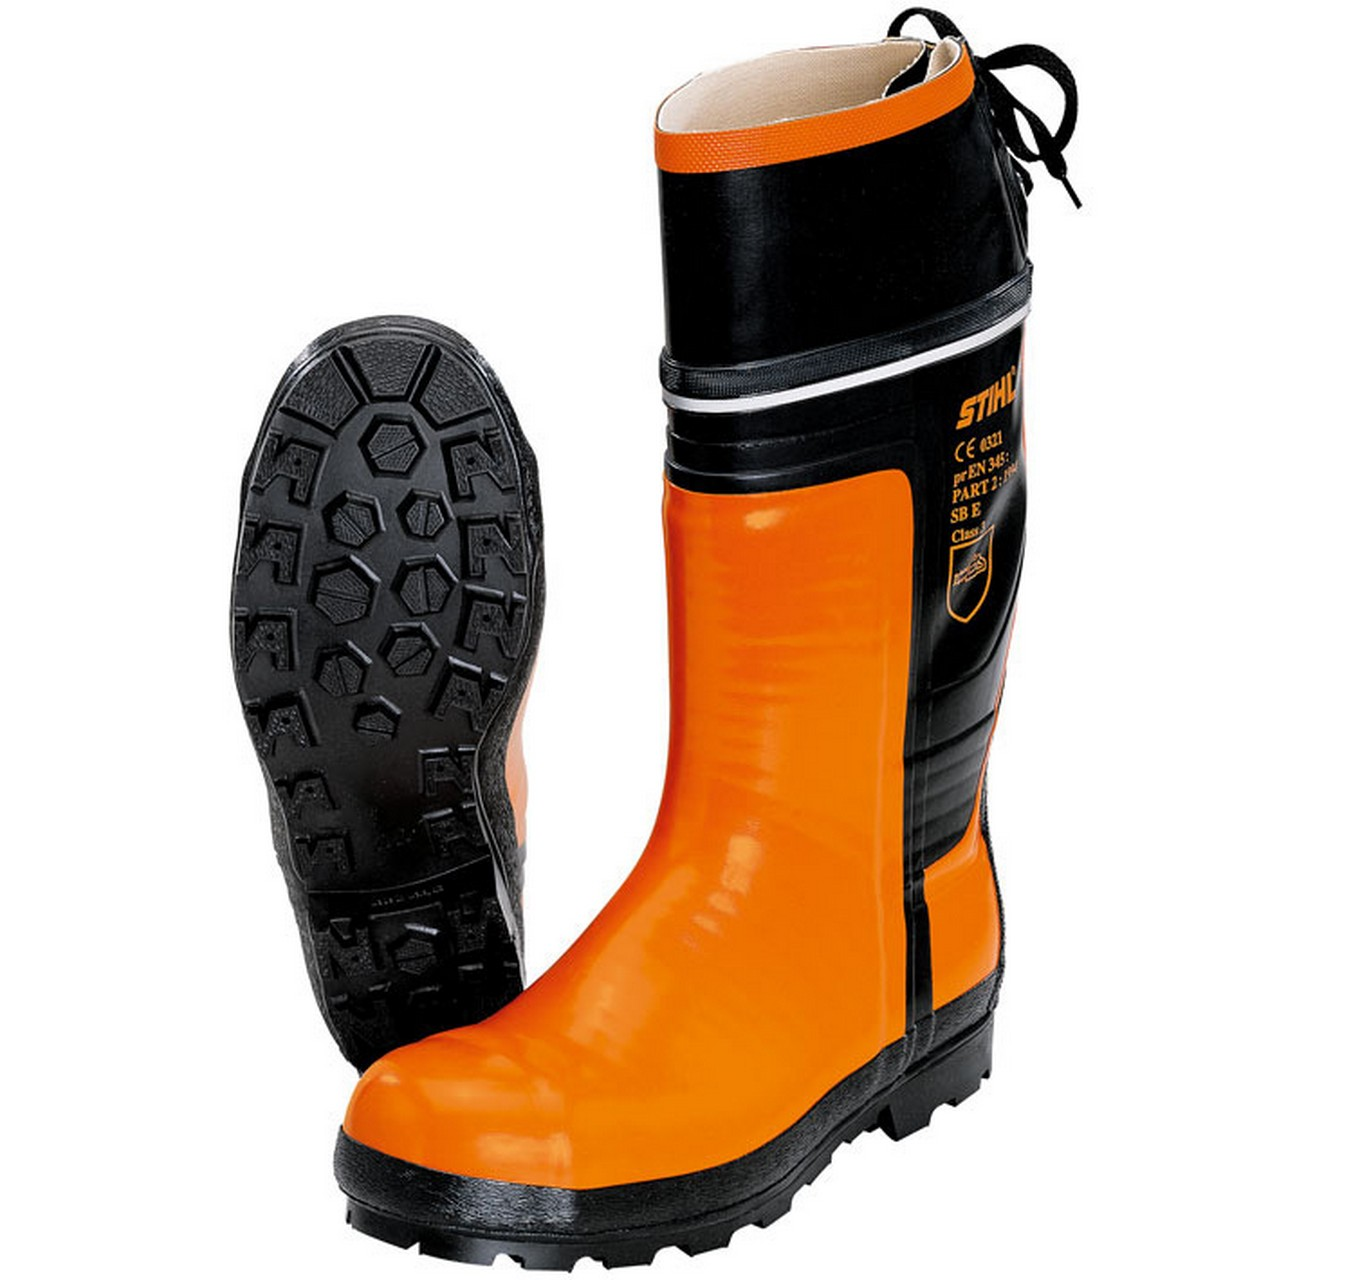 Special Rubber Boots Size 12